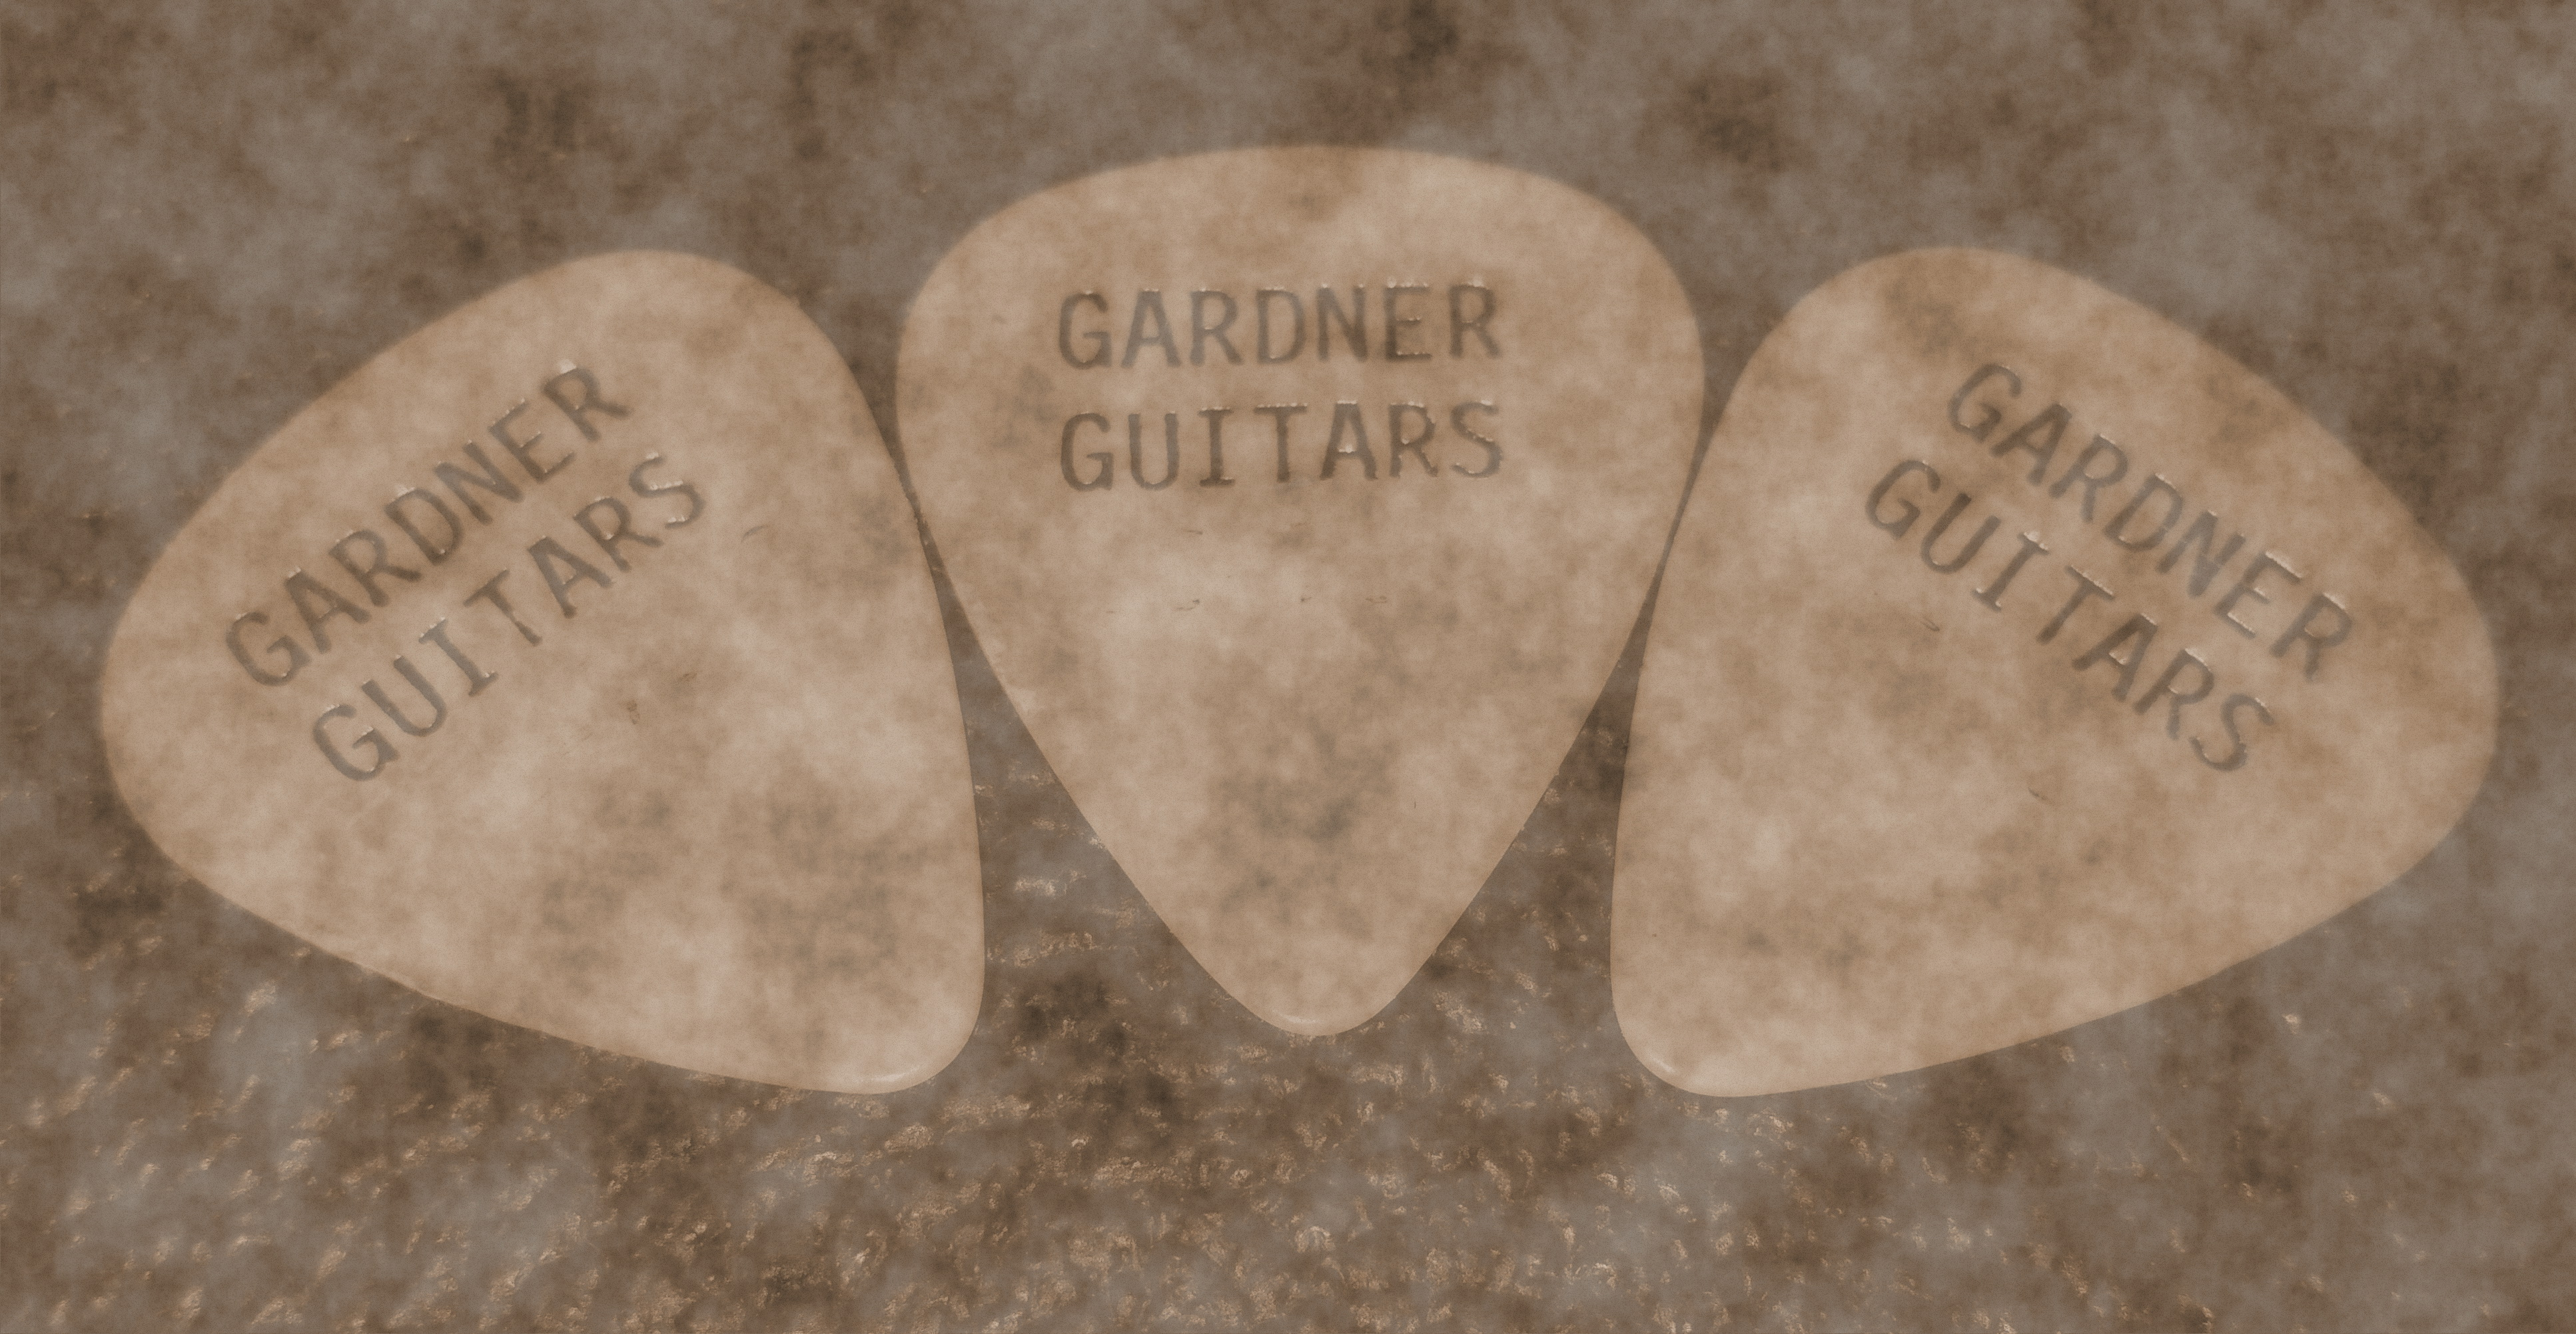 Gardner Guitars and More